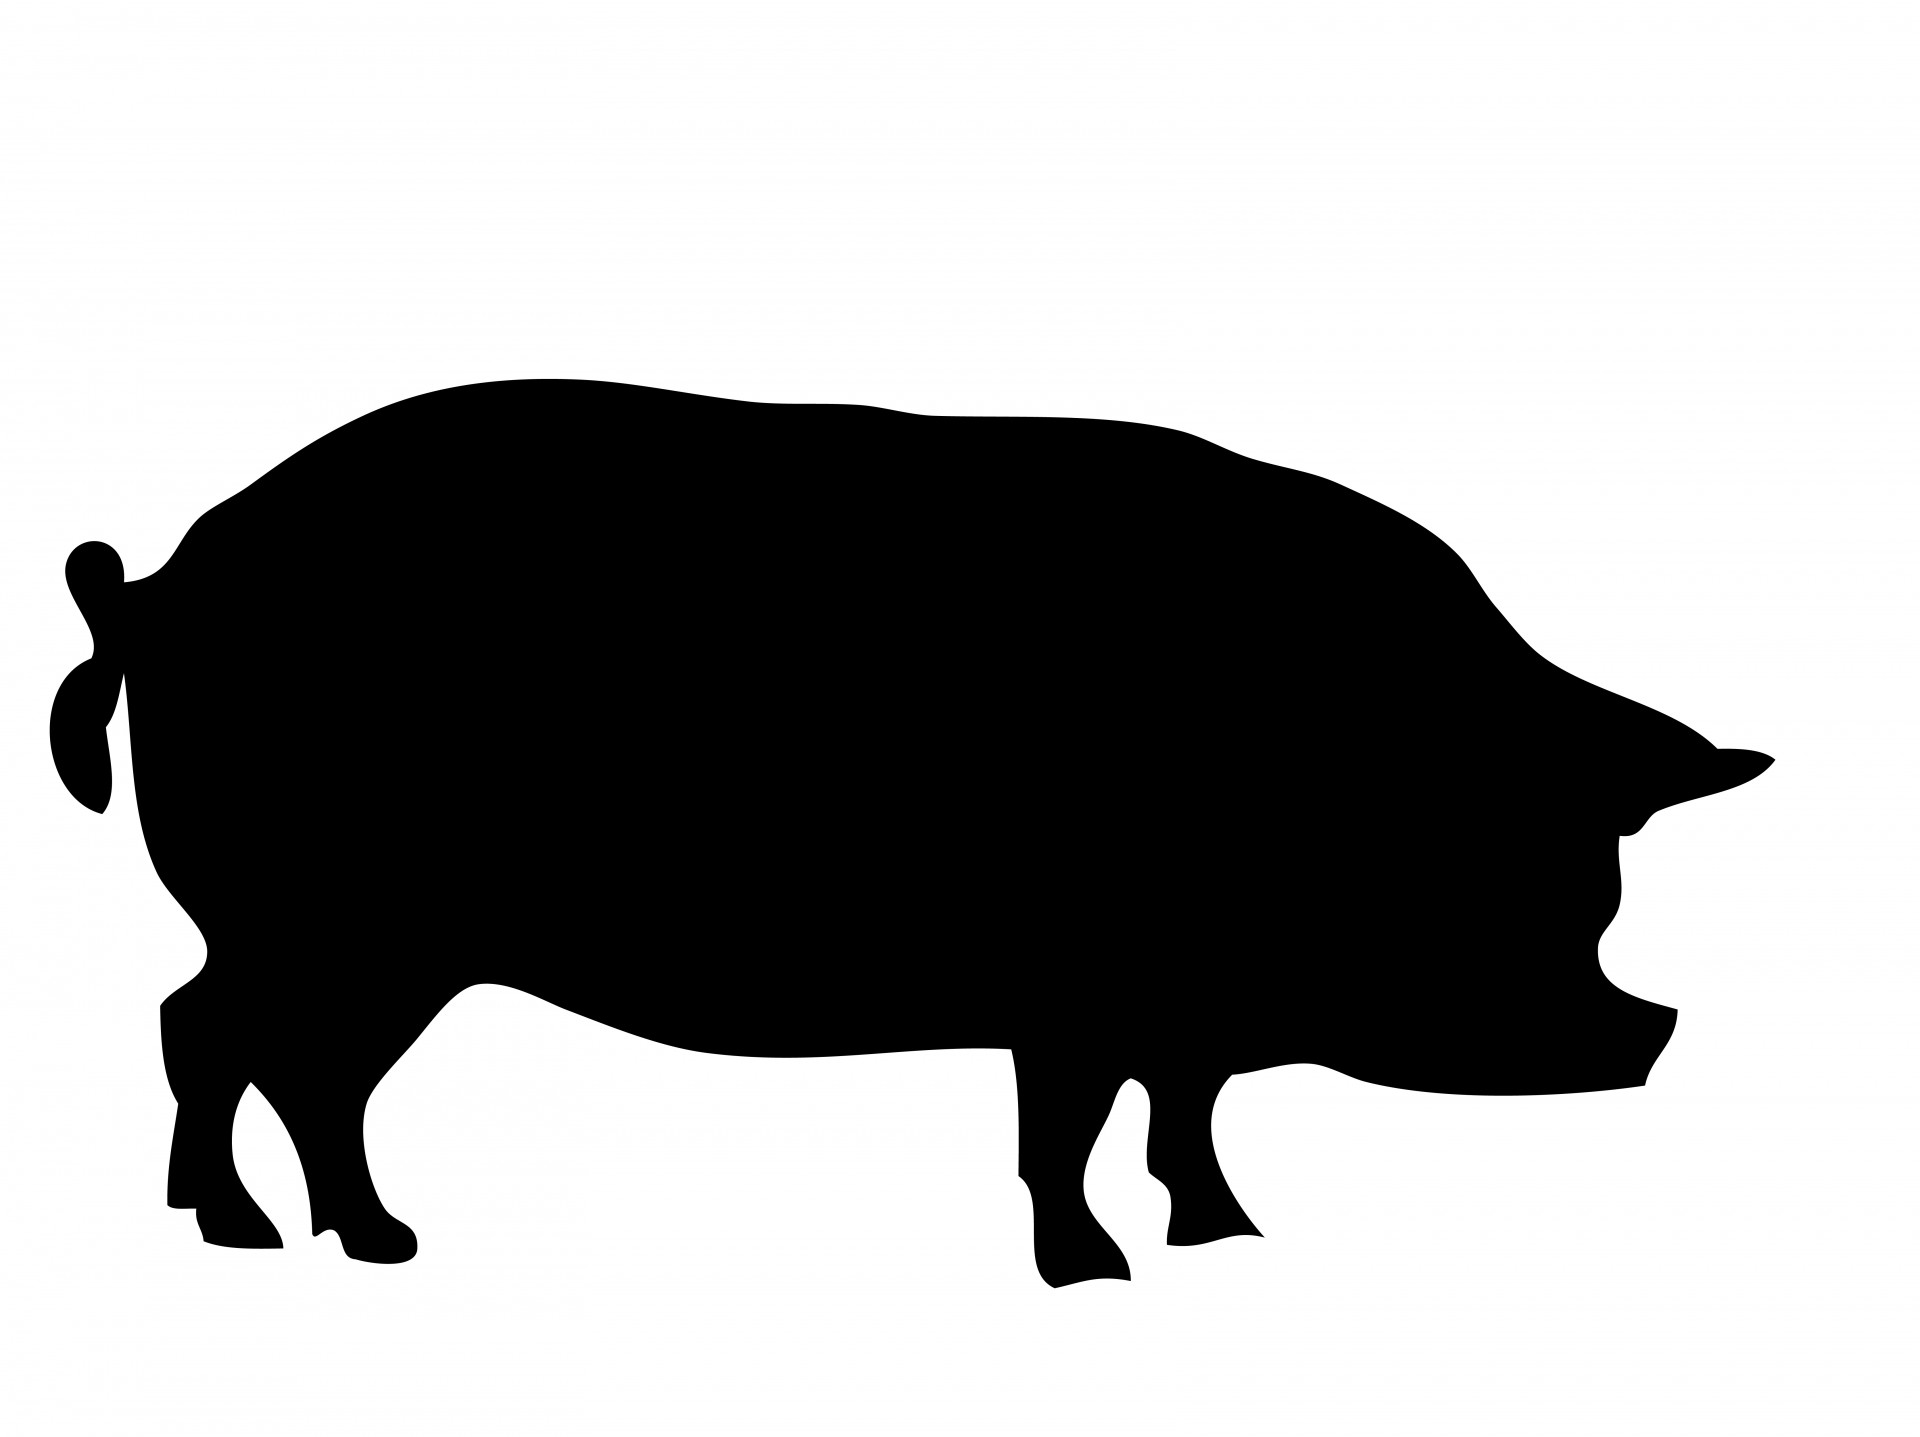 Pig clip art silhouette. Free stock photo public